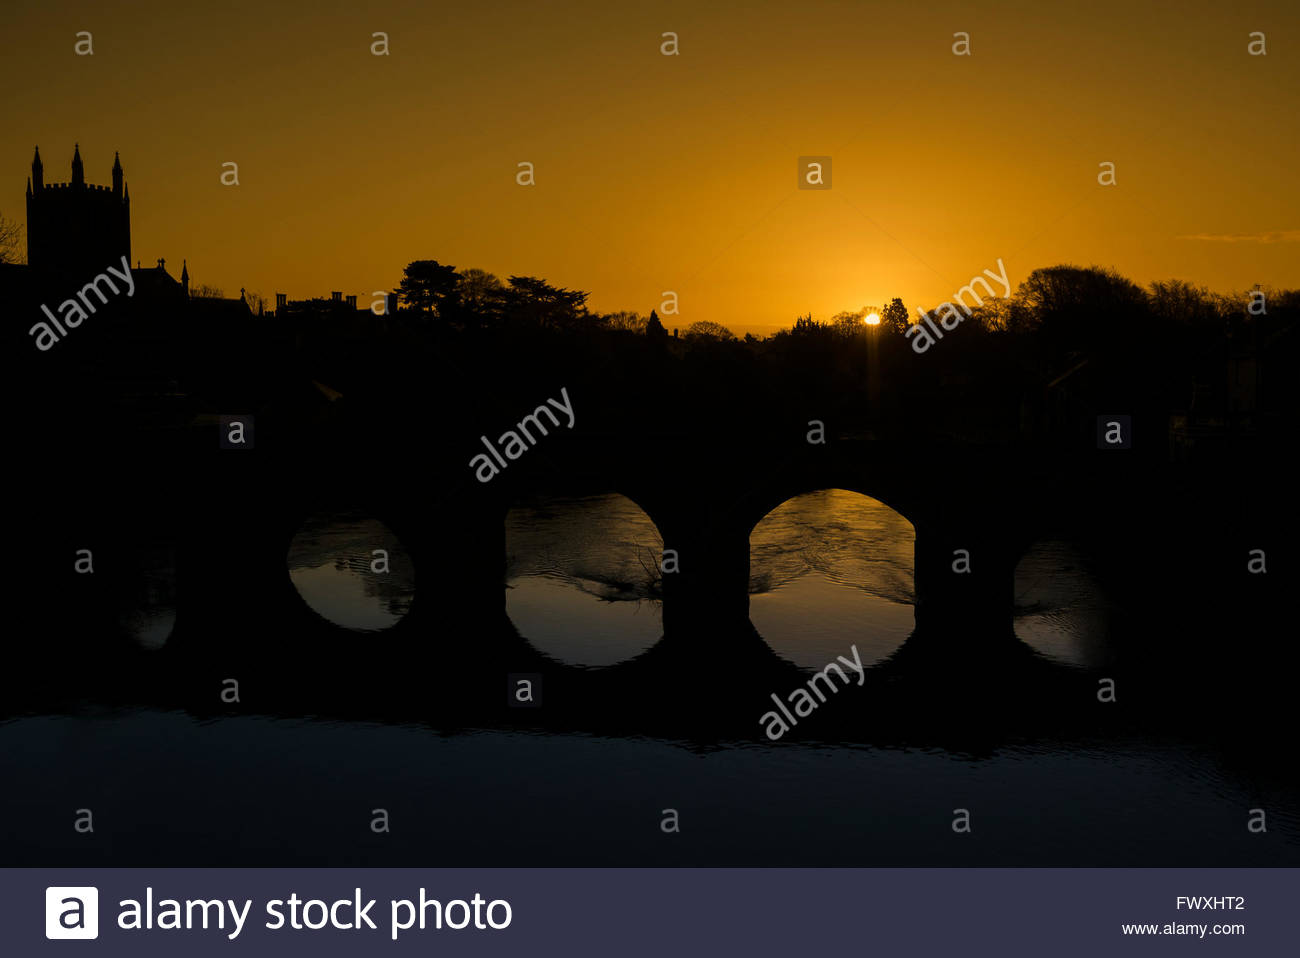 Old Bridge over the River Wye in Hereford City at sunrise, UK. - Stock Image